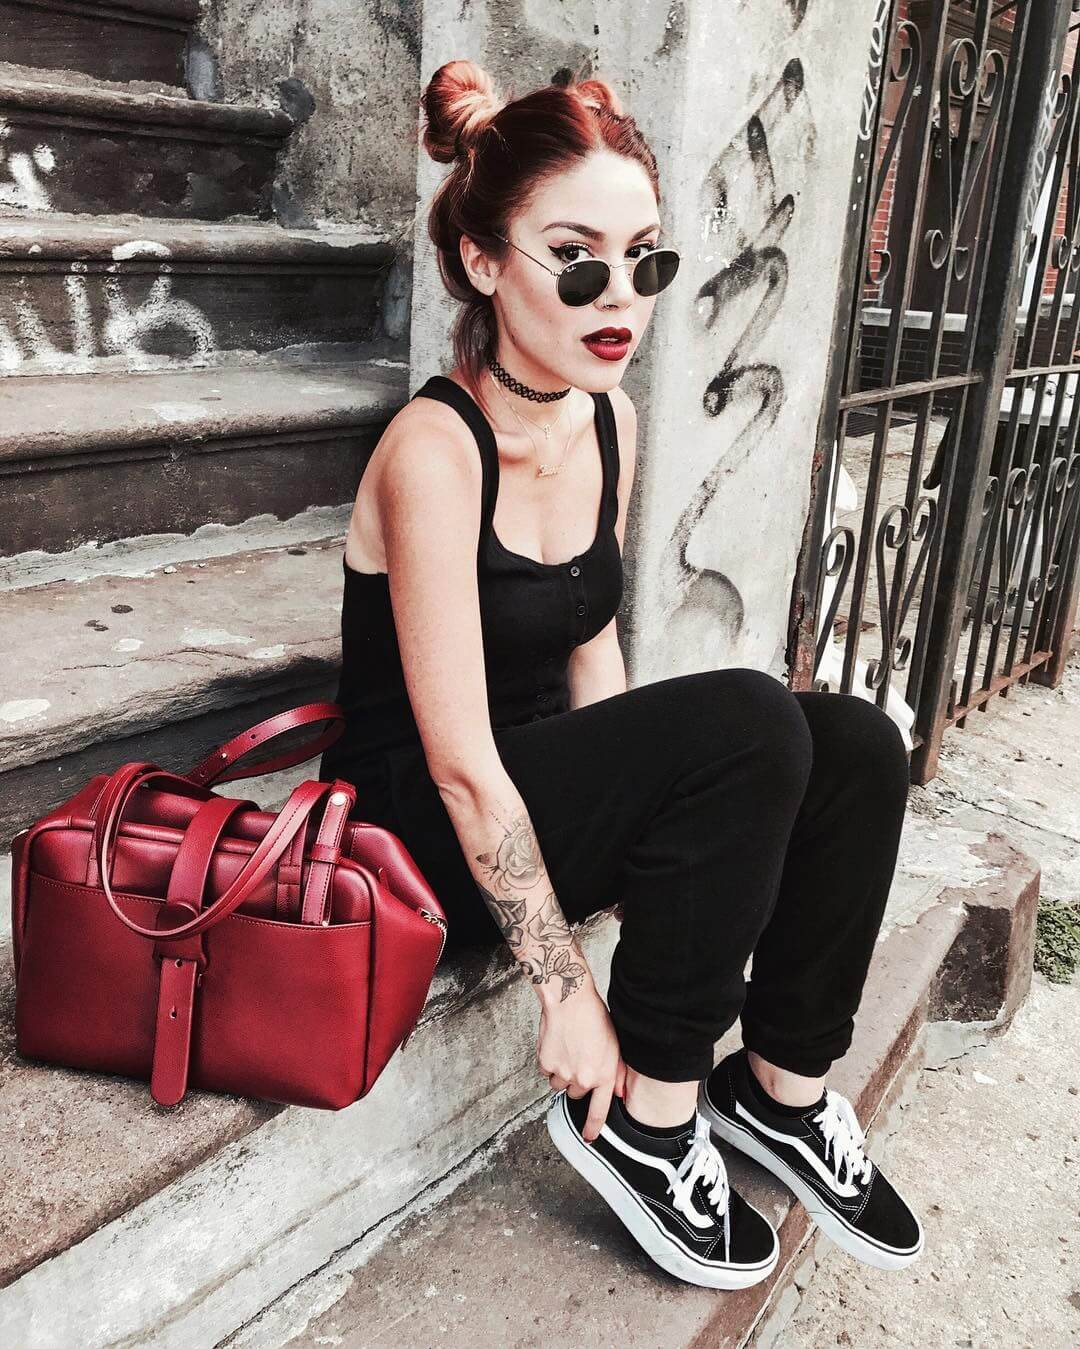 Shades, Choker necklace, black top, pants & Vans shoes by luanna